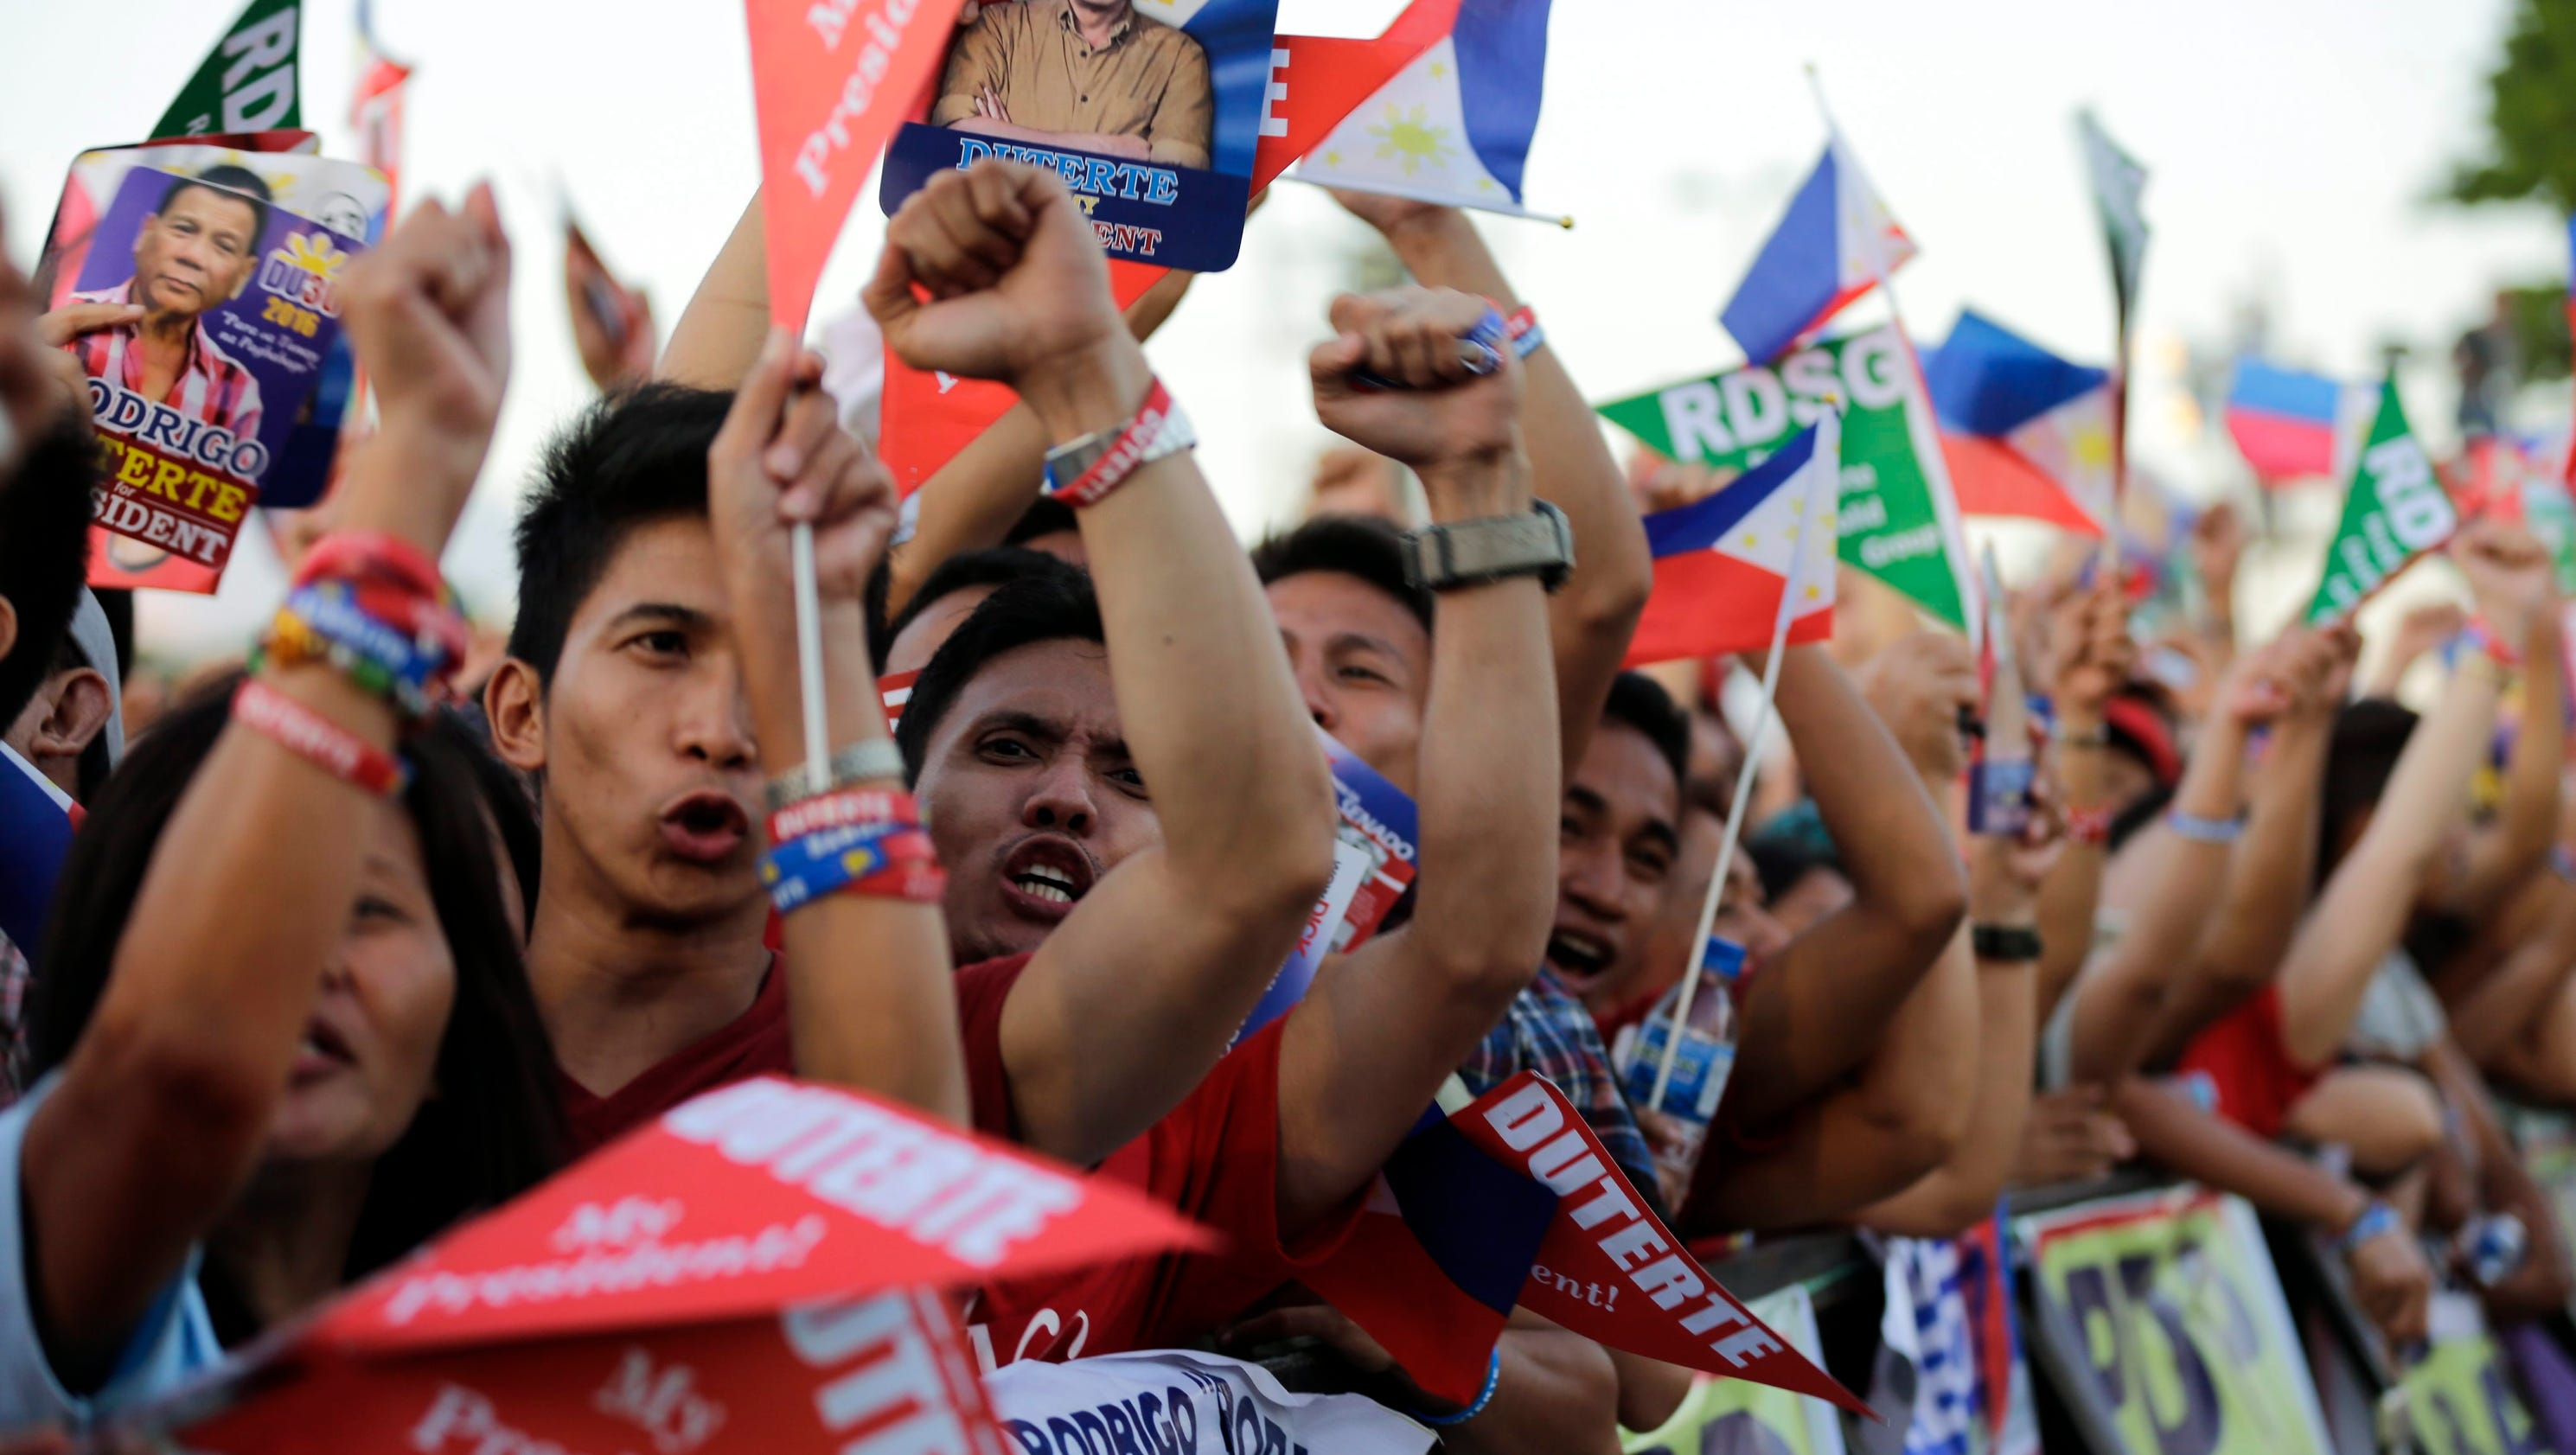 election in the philippines Today, i want to write about my experience over this election period this article is not about promoting any particular candidate or party, it is about the experience of living in a city.